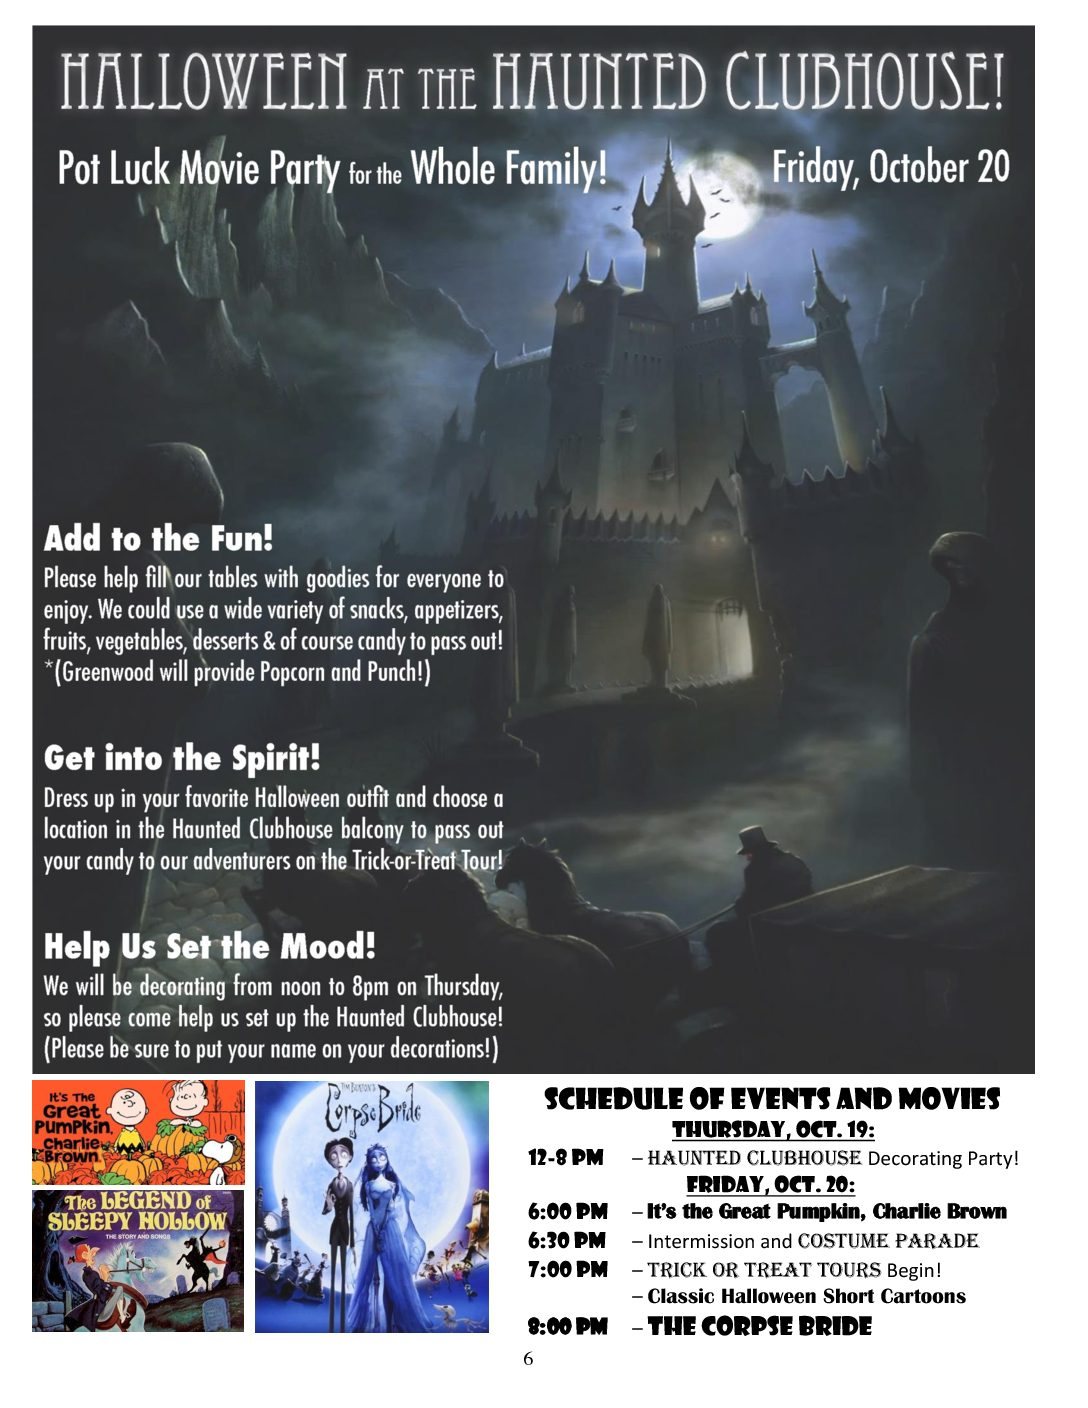 halloween at the haunted clubhouse party 6 pm friday oct 20